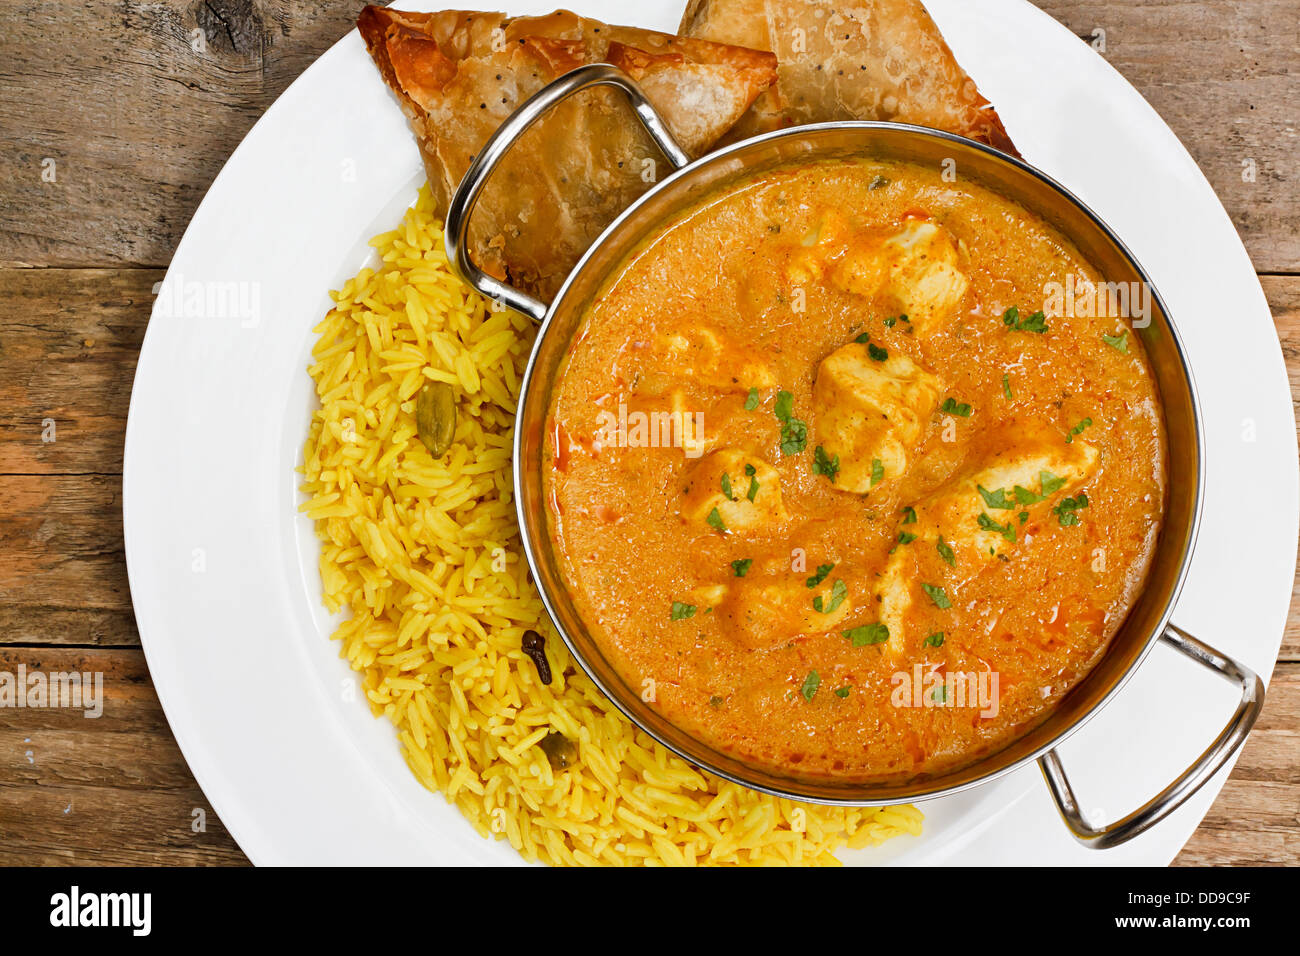 Chicken Korma a popular indian curry dish and favourite with people not keen on spicy food - Stock Image